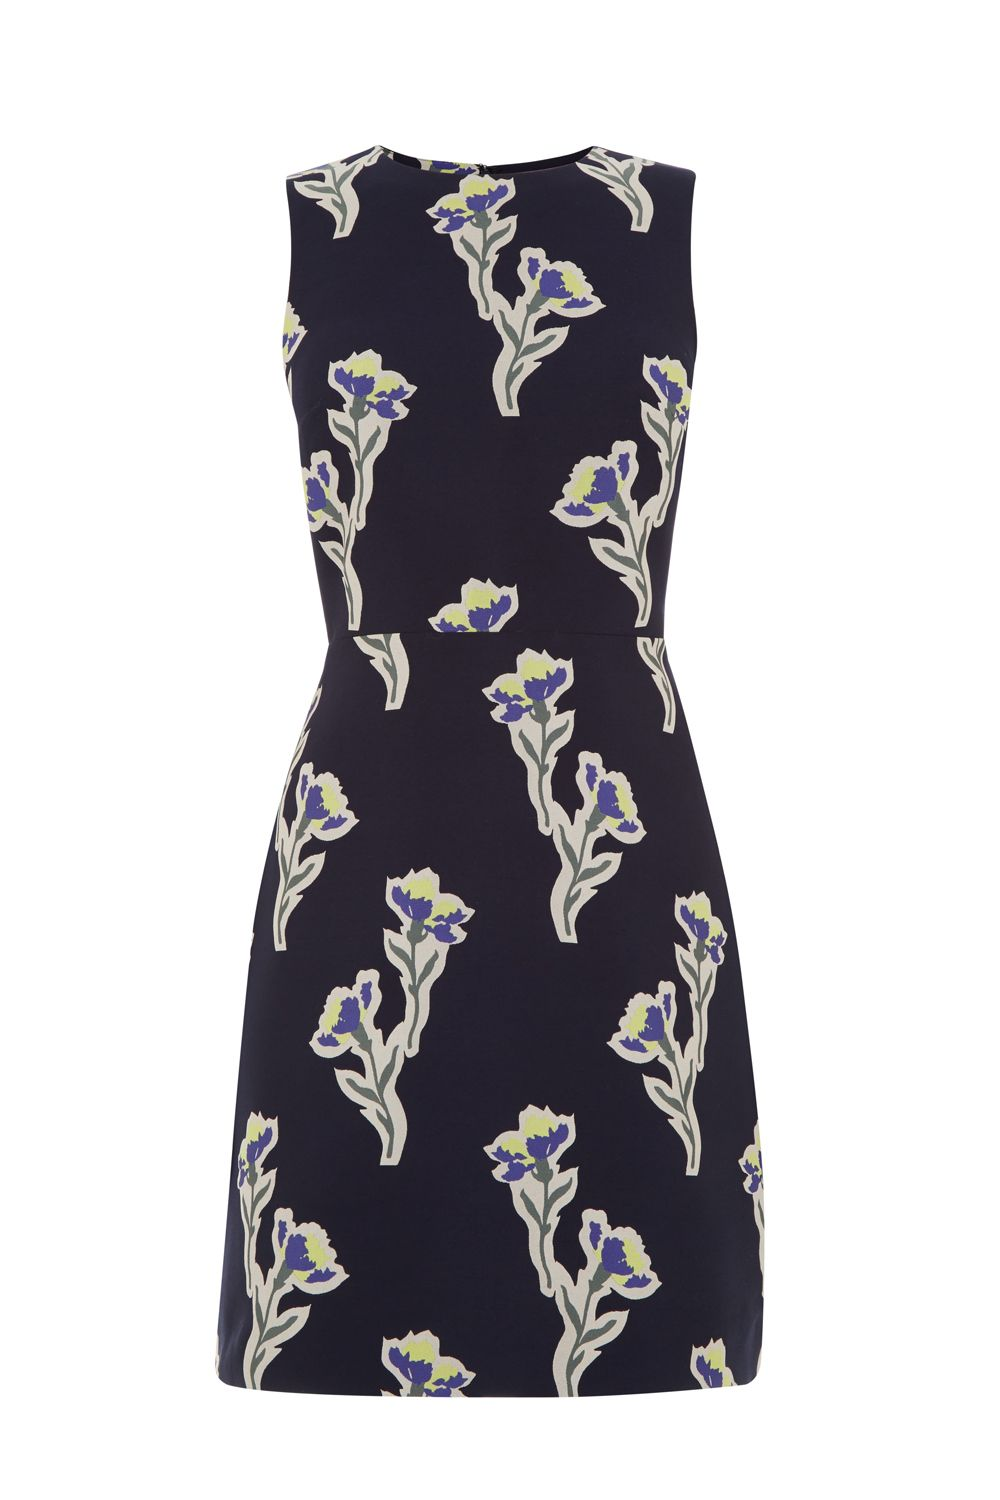 Warehouse Iris Jacquard Dress, Multi-Coloured